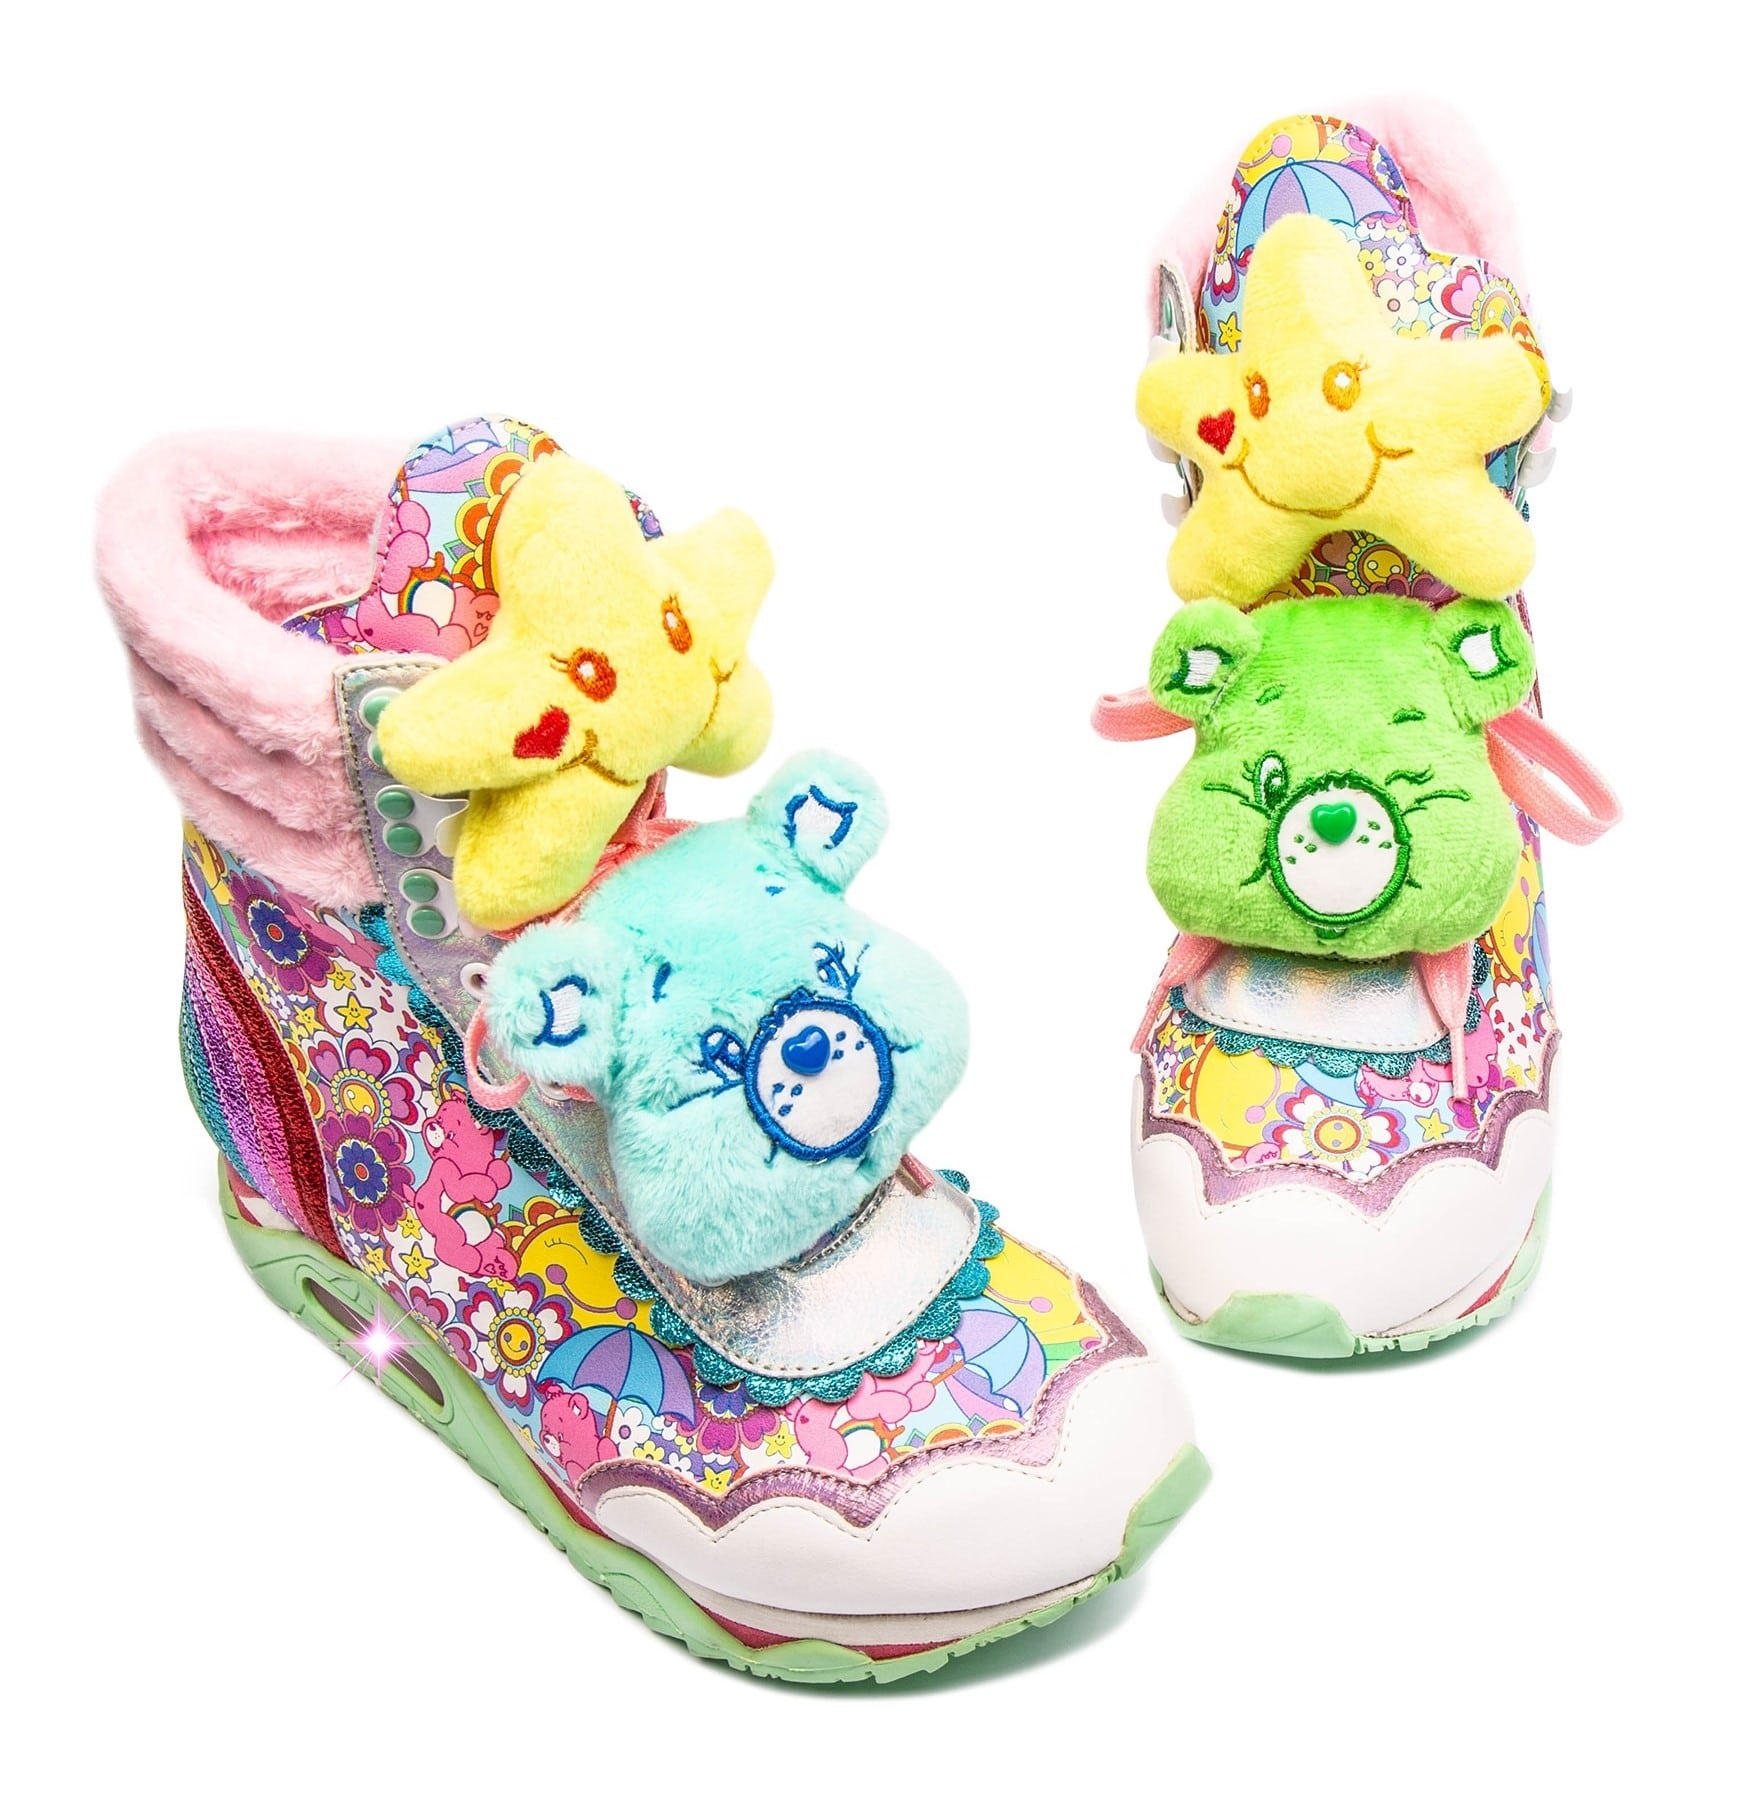 Irregular Choice Care Bears collection includes outrageous furry shoes 15